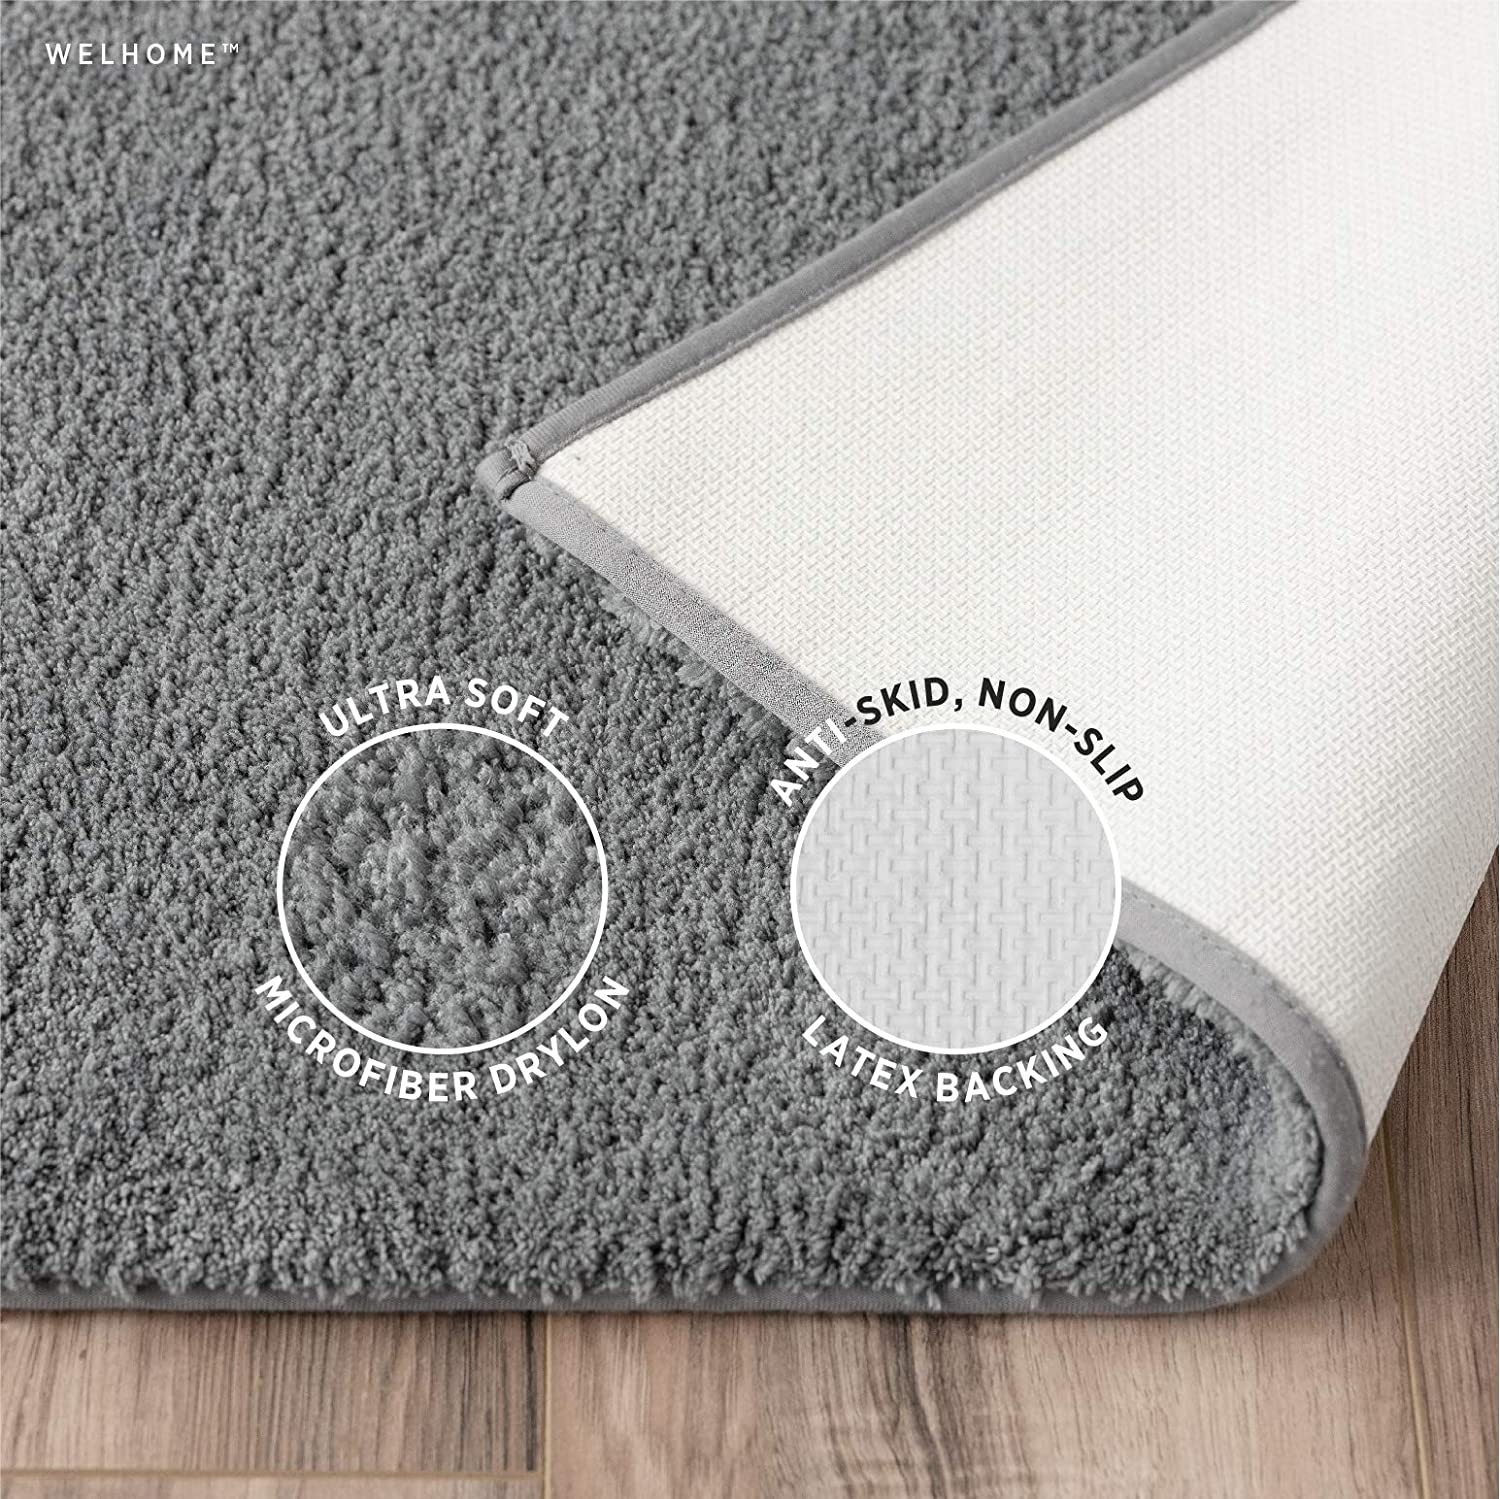 """Welhome 100% Microfiber Drylon Non Slip Bath Rug - Latex Backing - Ultra Absorbent - Quick Dry - Soft - Durable - Hotel Spa Bathroom Collection - 17""""x 24"""", 21""""x 34"""" -Gray: Kitchen & Dining"""